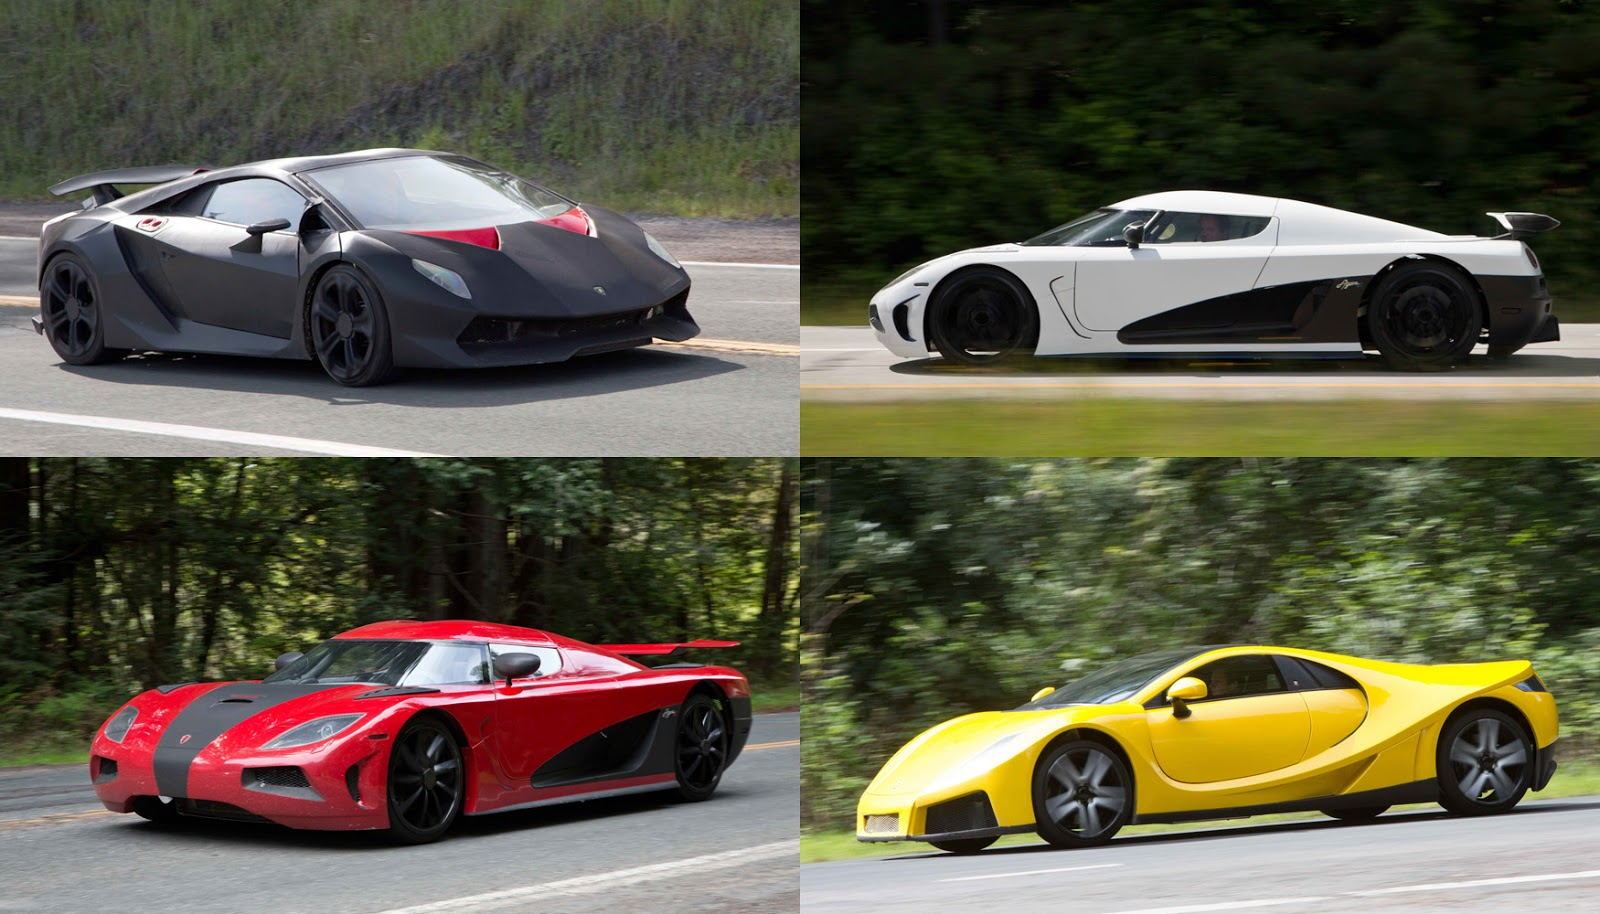 Lakwatsera Lovers The Super Cars Of NEED FOR SPEED